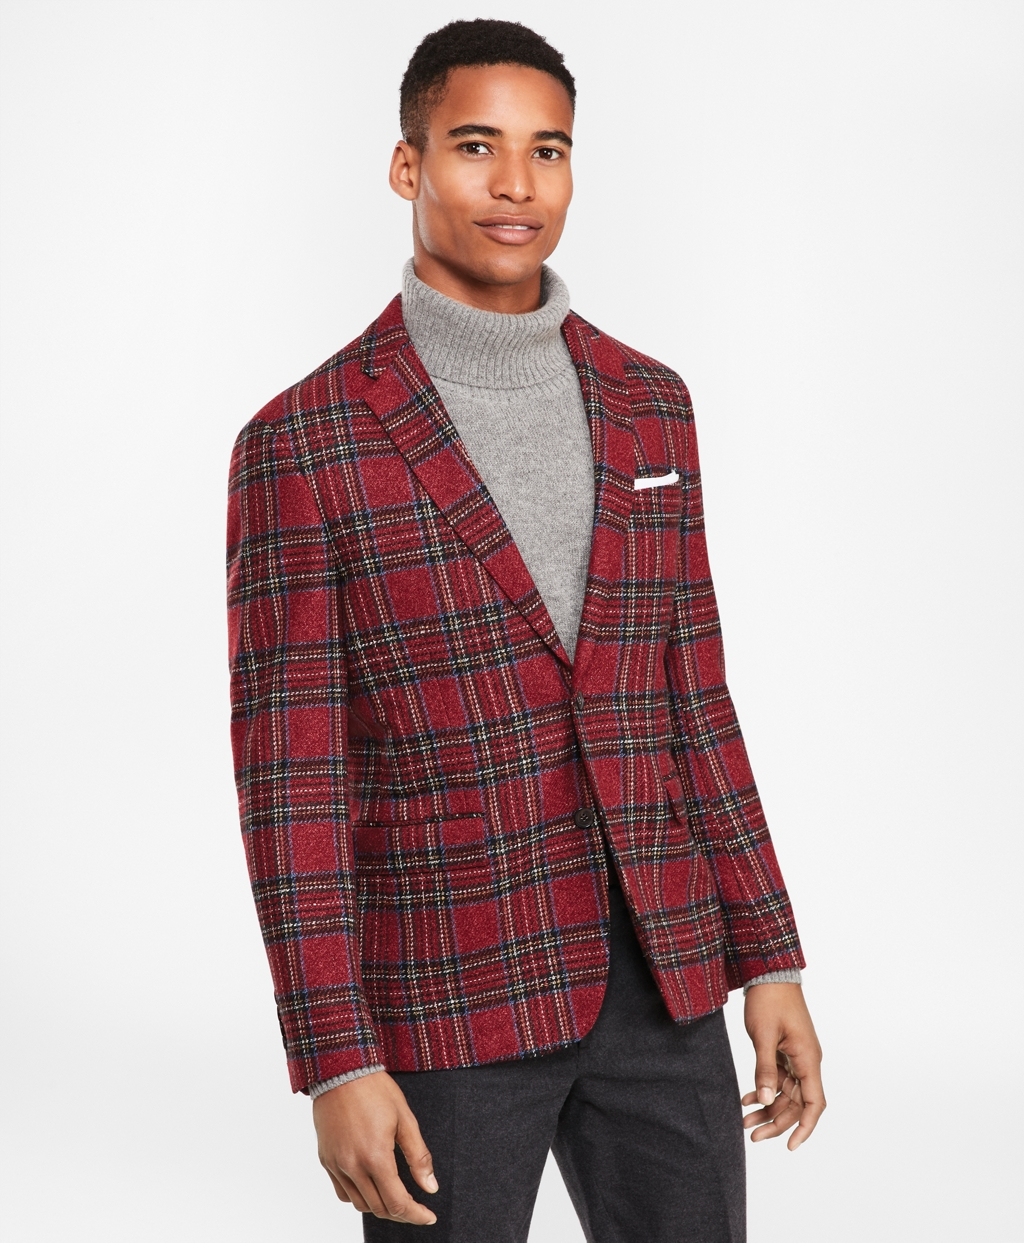 1950s Style Mens Suits | 50s Suits Brooks Brothers Mens Wool-Blend Two-Button Tartan Sport Coat $358.00 AT vintagedancer.com